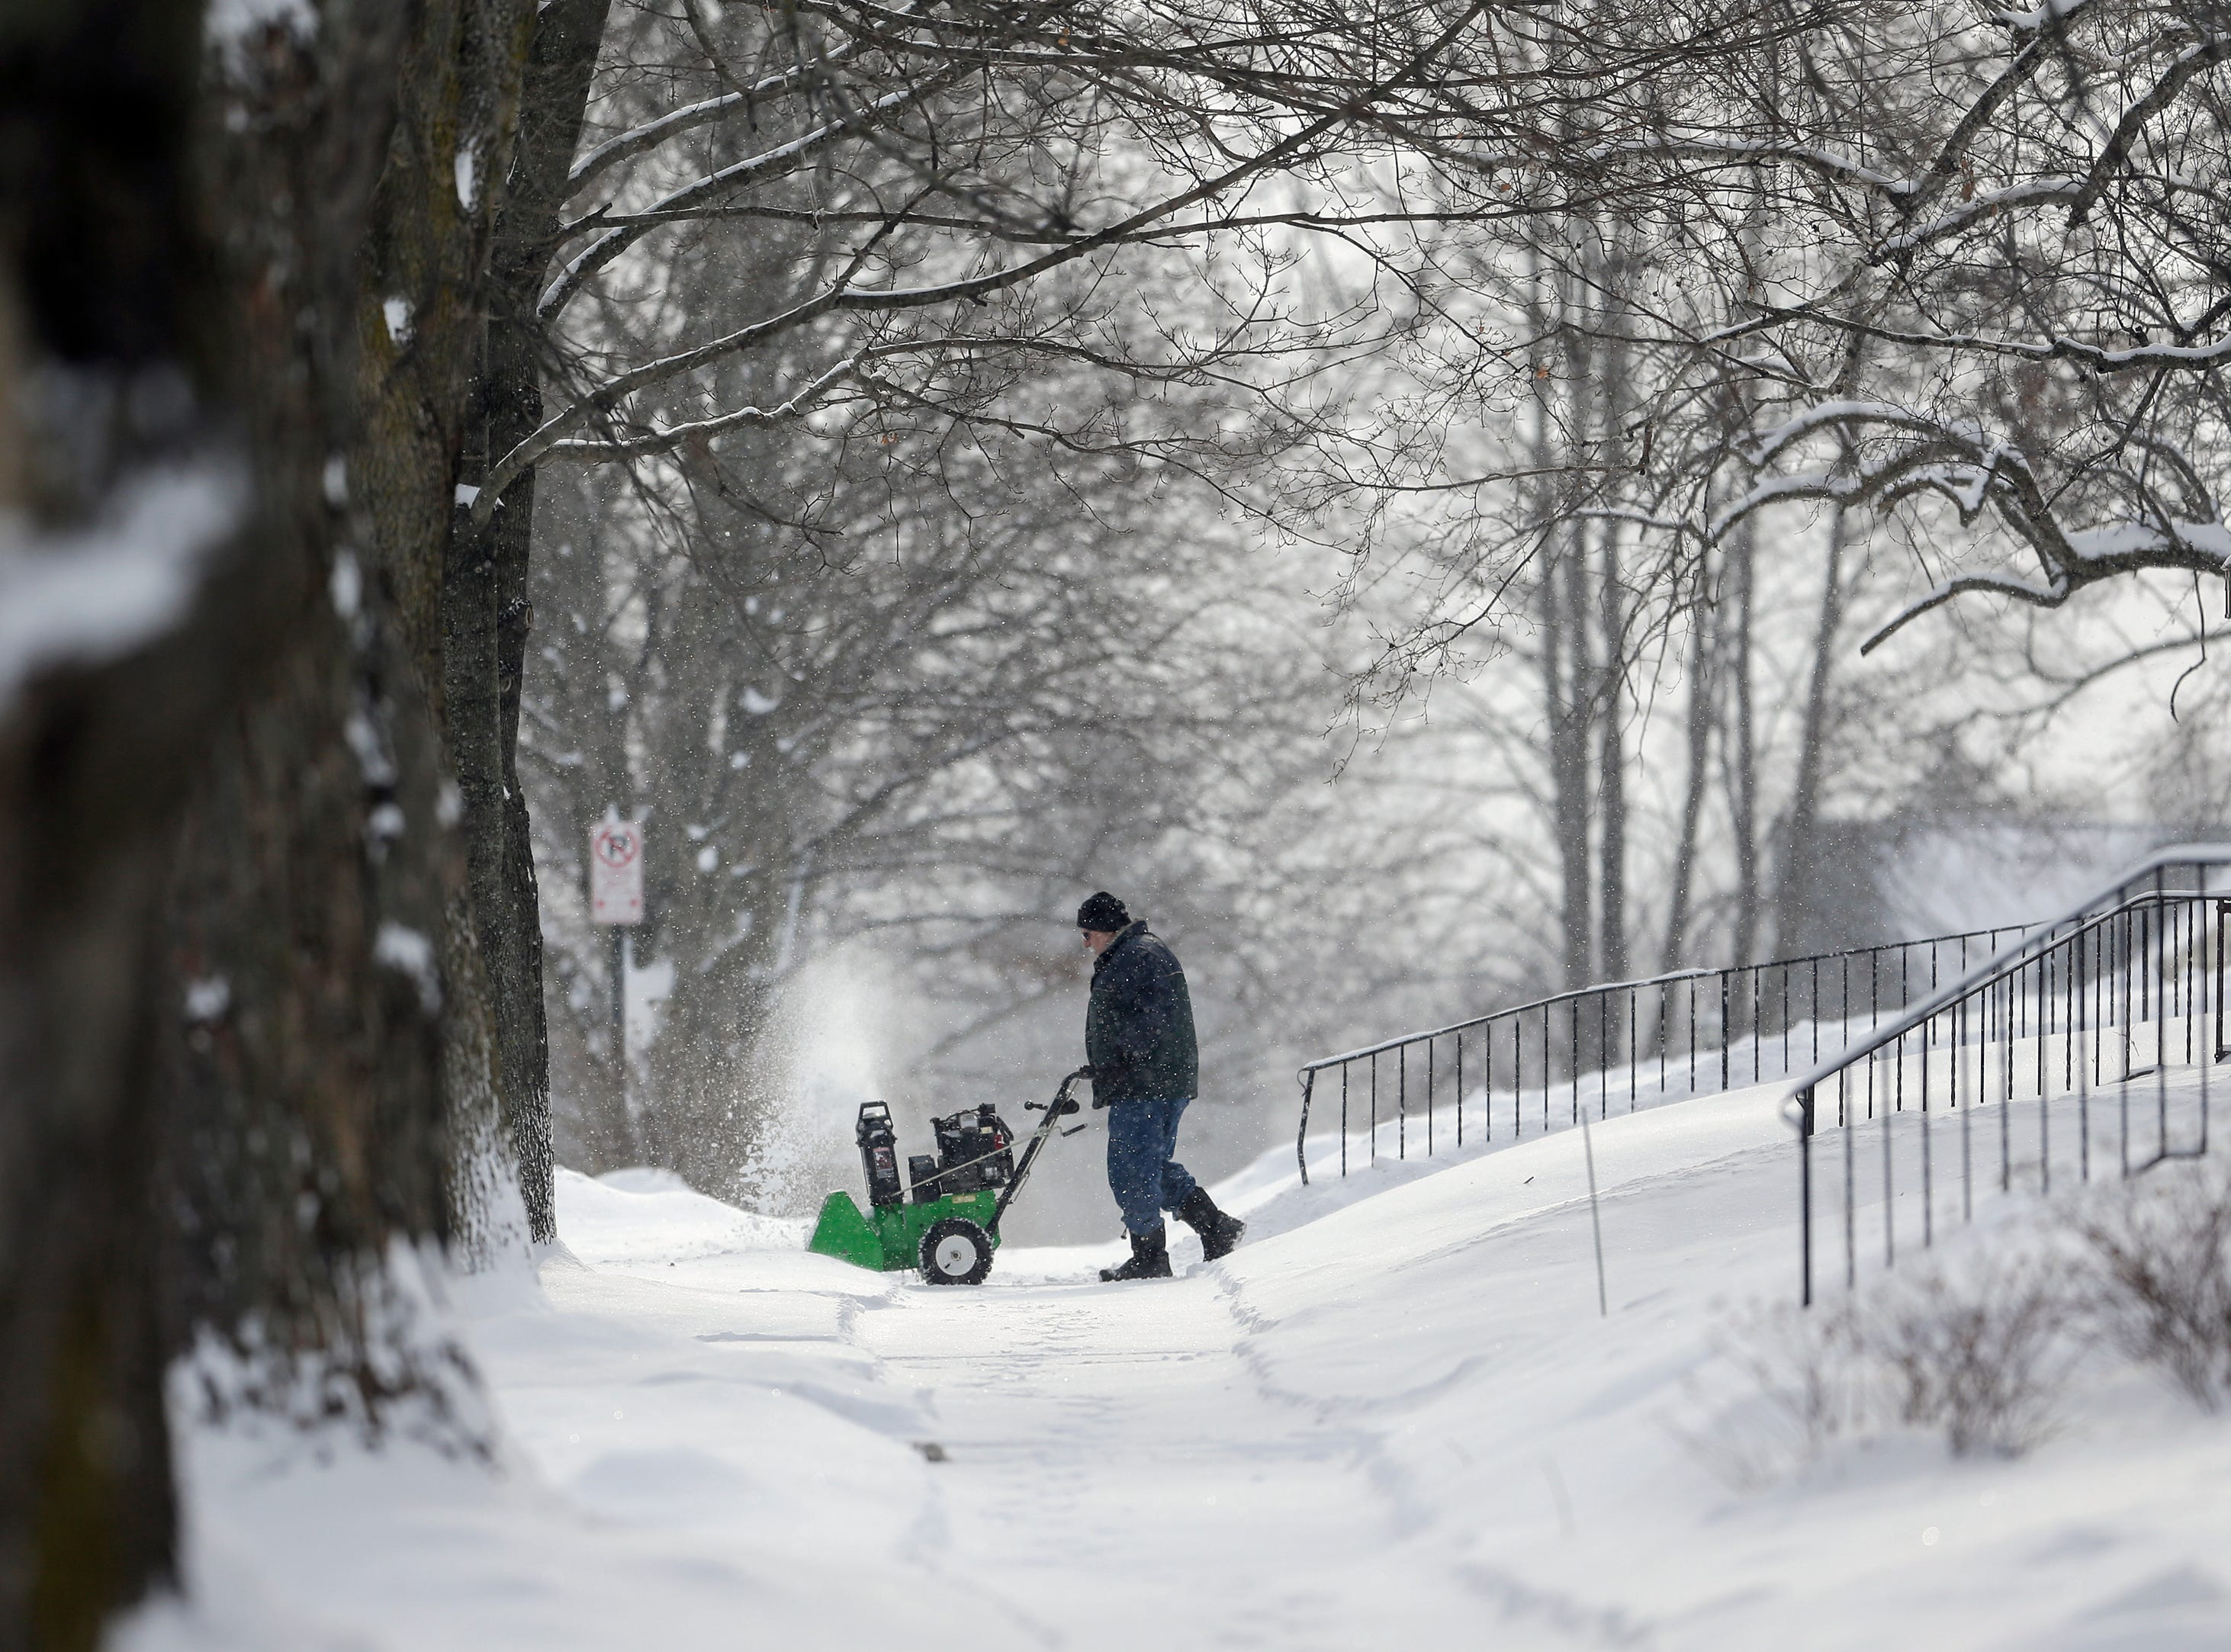 A man clears the sidewalk after a snowstorm Wednesday, January 23, 2019, in Manitowoc, Wis. Joshua Clark/USA TODAY NETWORK-Wisconsin